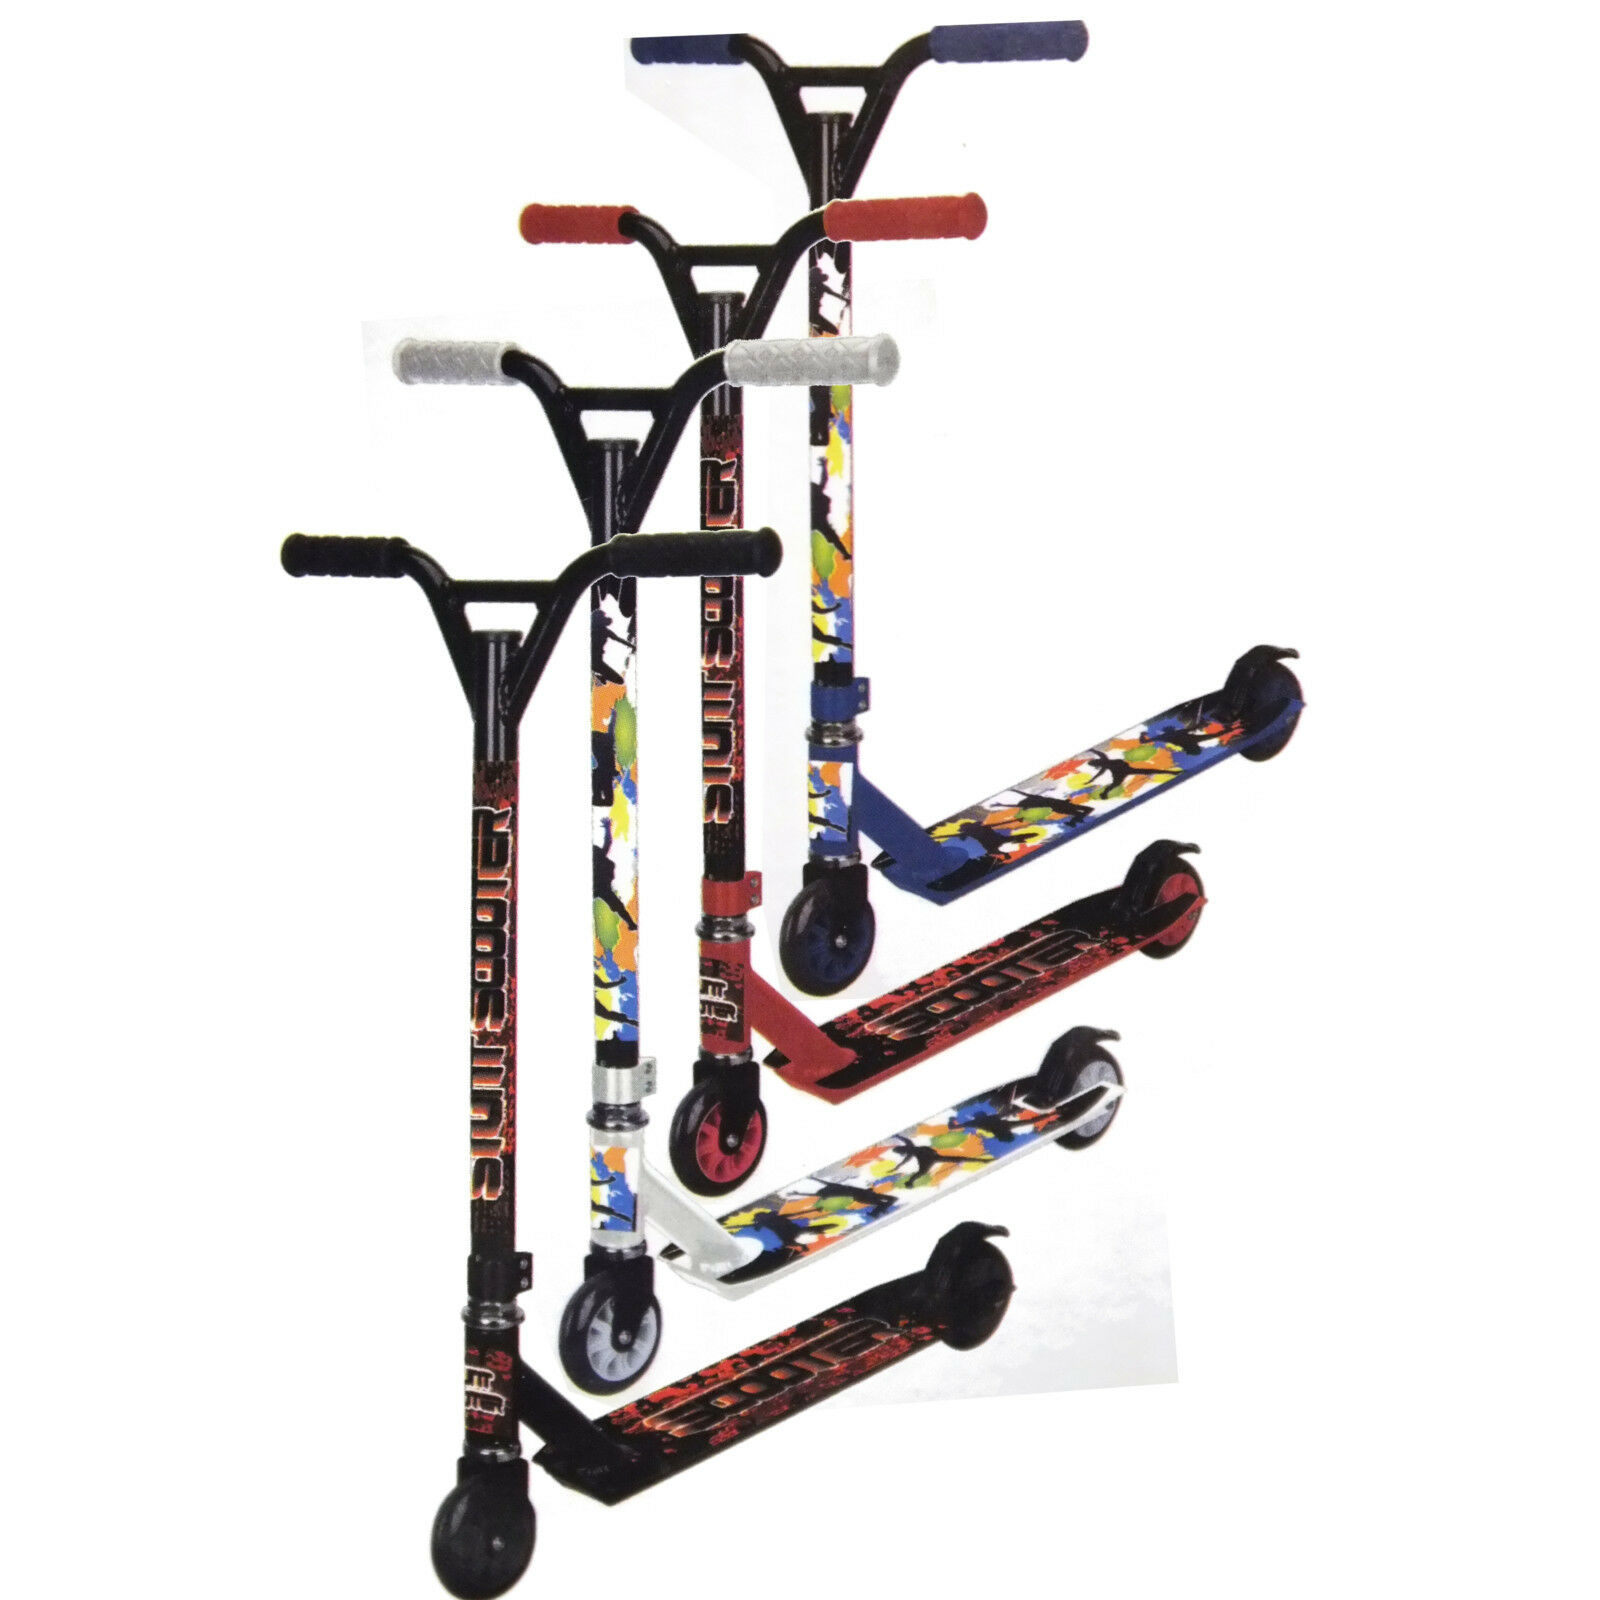 SCOOTER RAGE 360 DEGREE PRO STUNT SCOOTER (4 COLOURS, HIGH SPEC, AGES 7+)